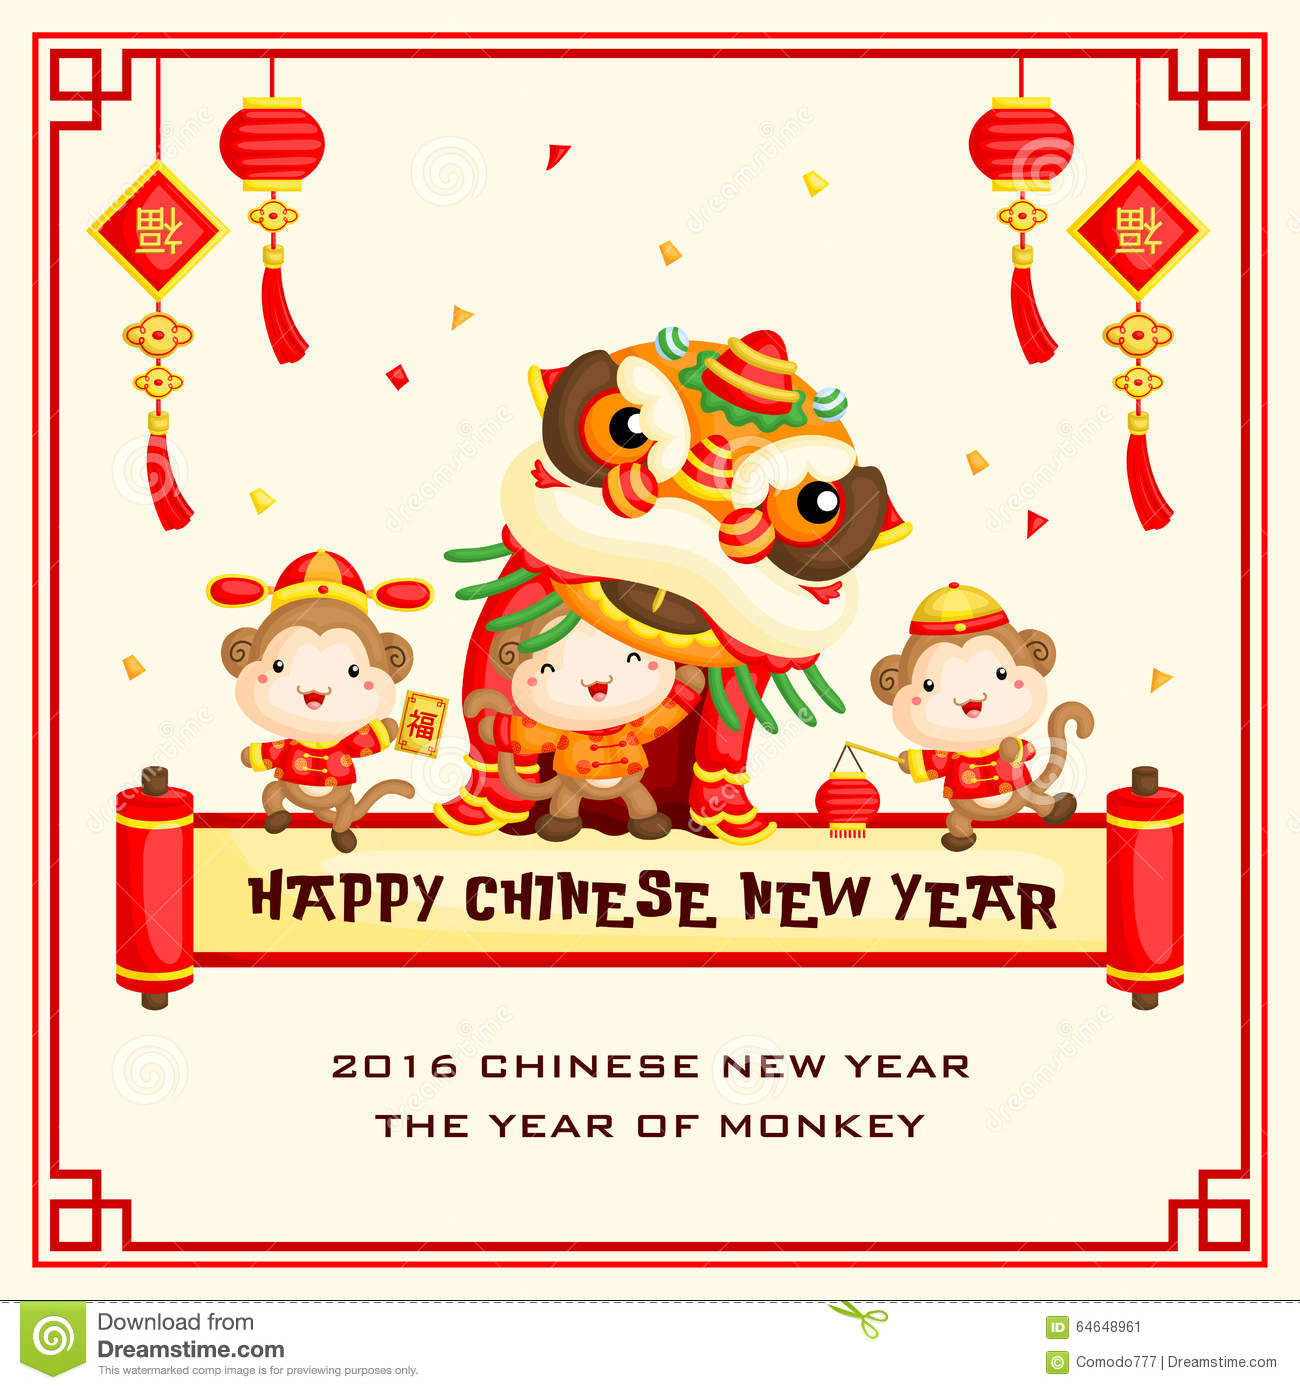 Monkey chinese new year greeting card stock vector illustration of monkey chinese new year greeting card reheart Choice Image